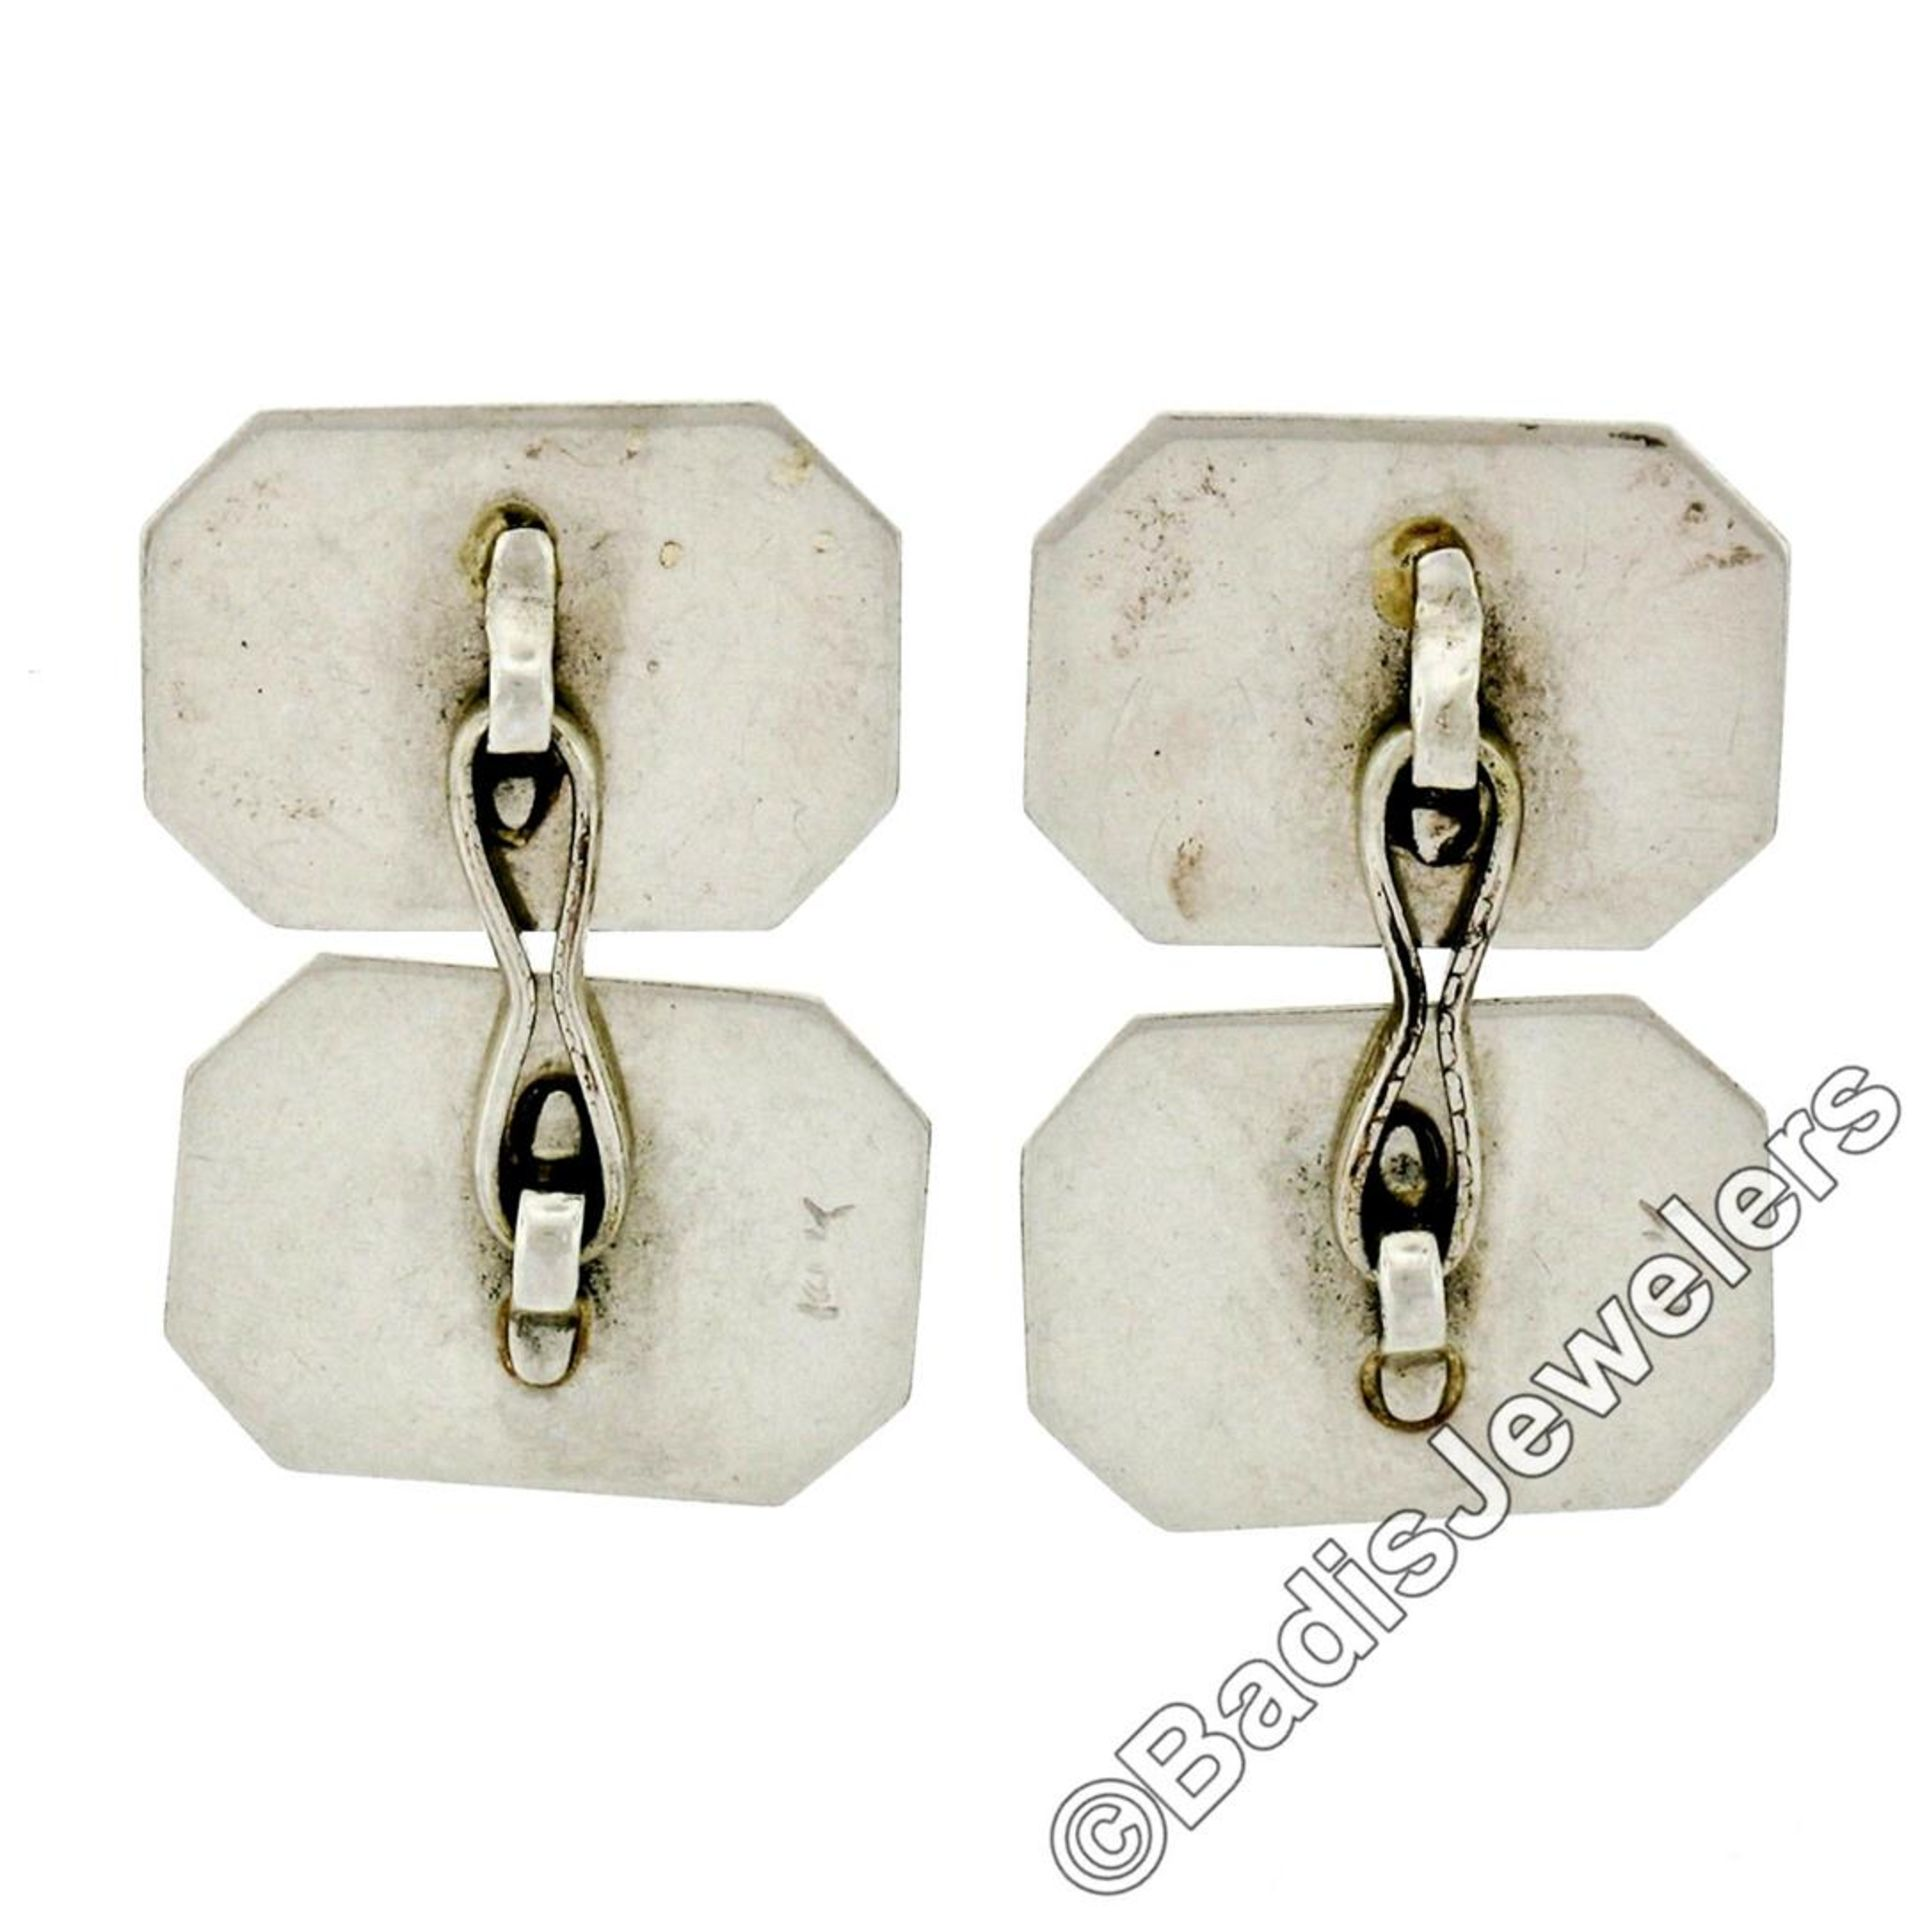 Antique Art Deco 14kt White Gold Etched Dual Panel Cuff Links - Image 5 of 5